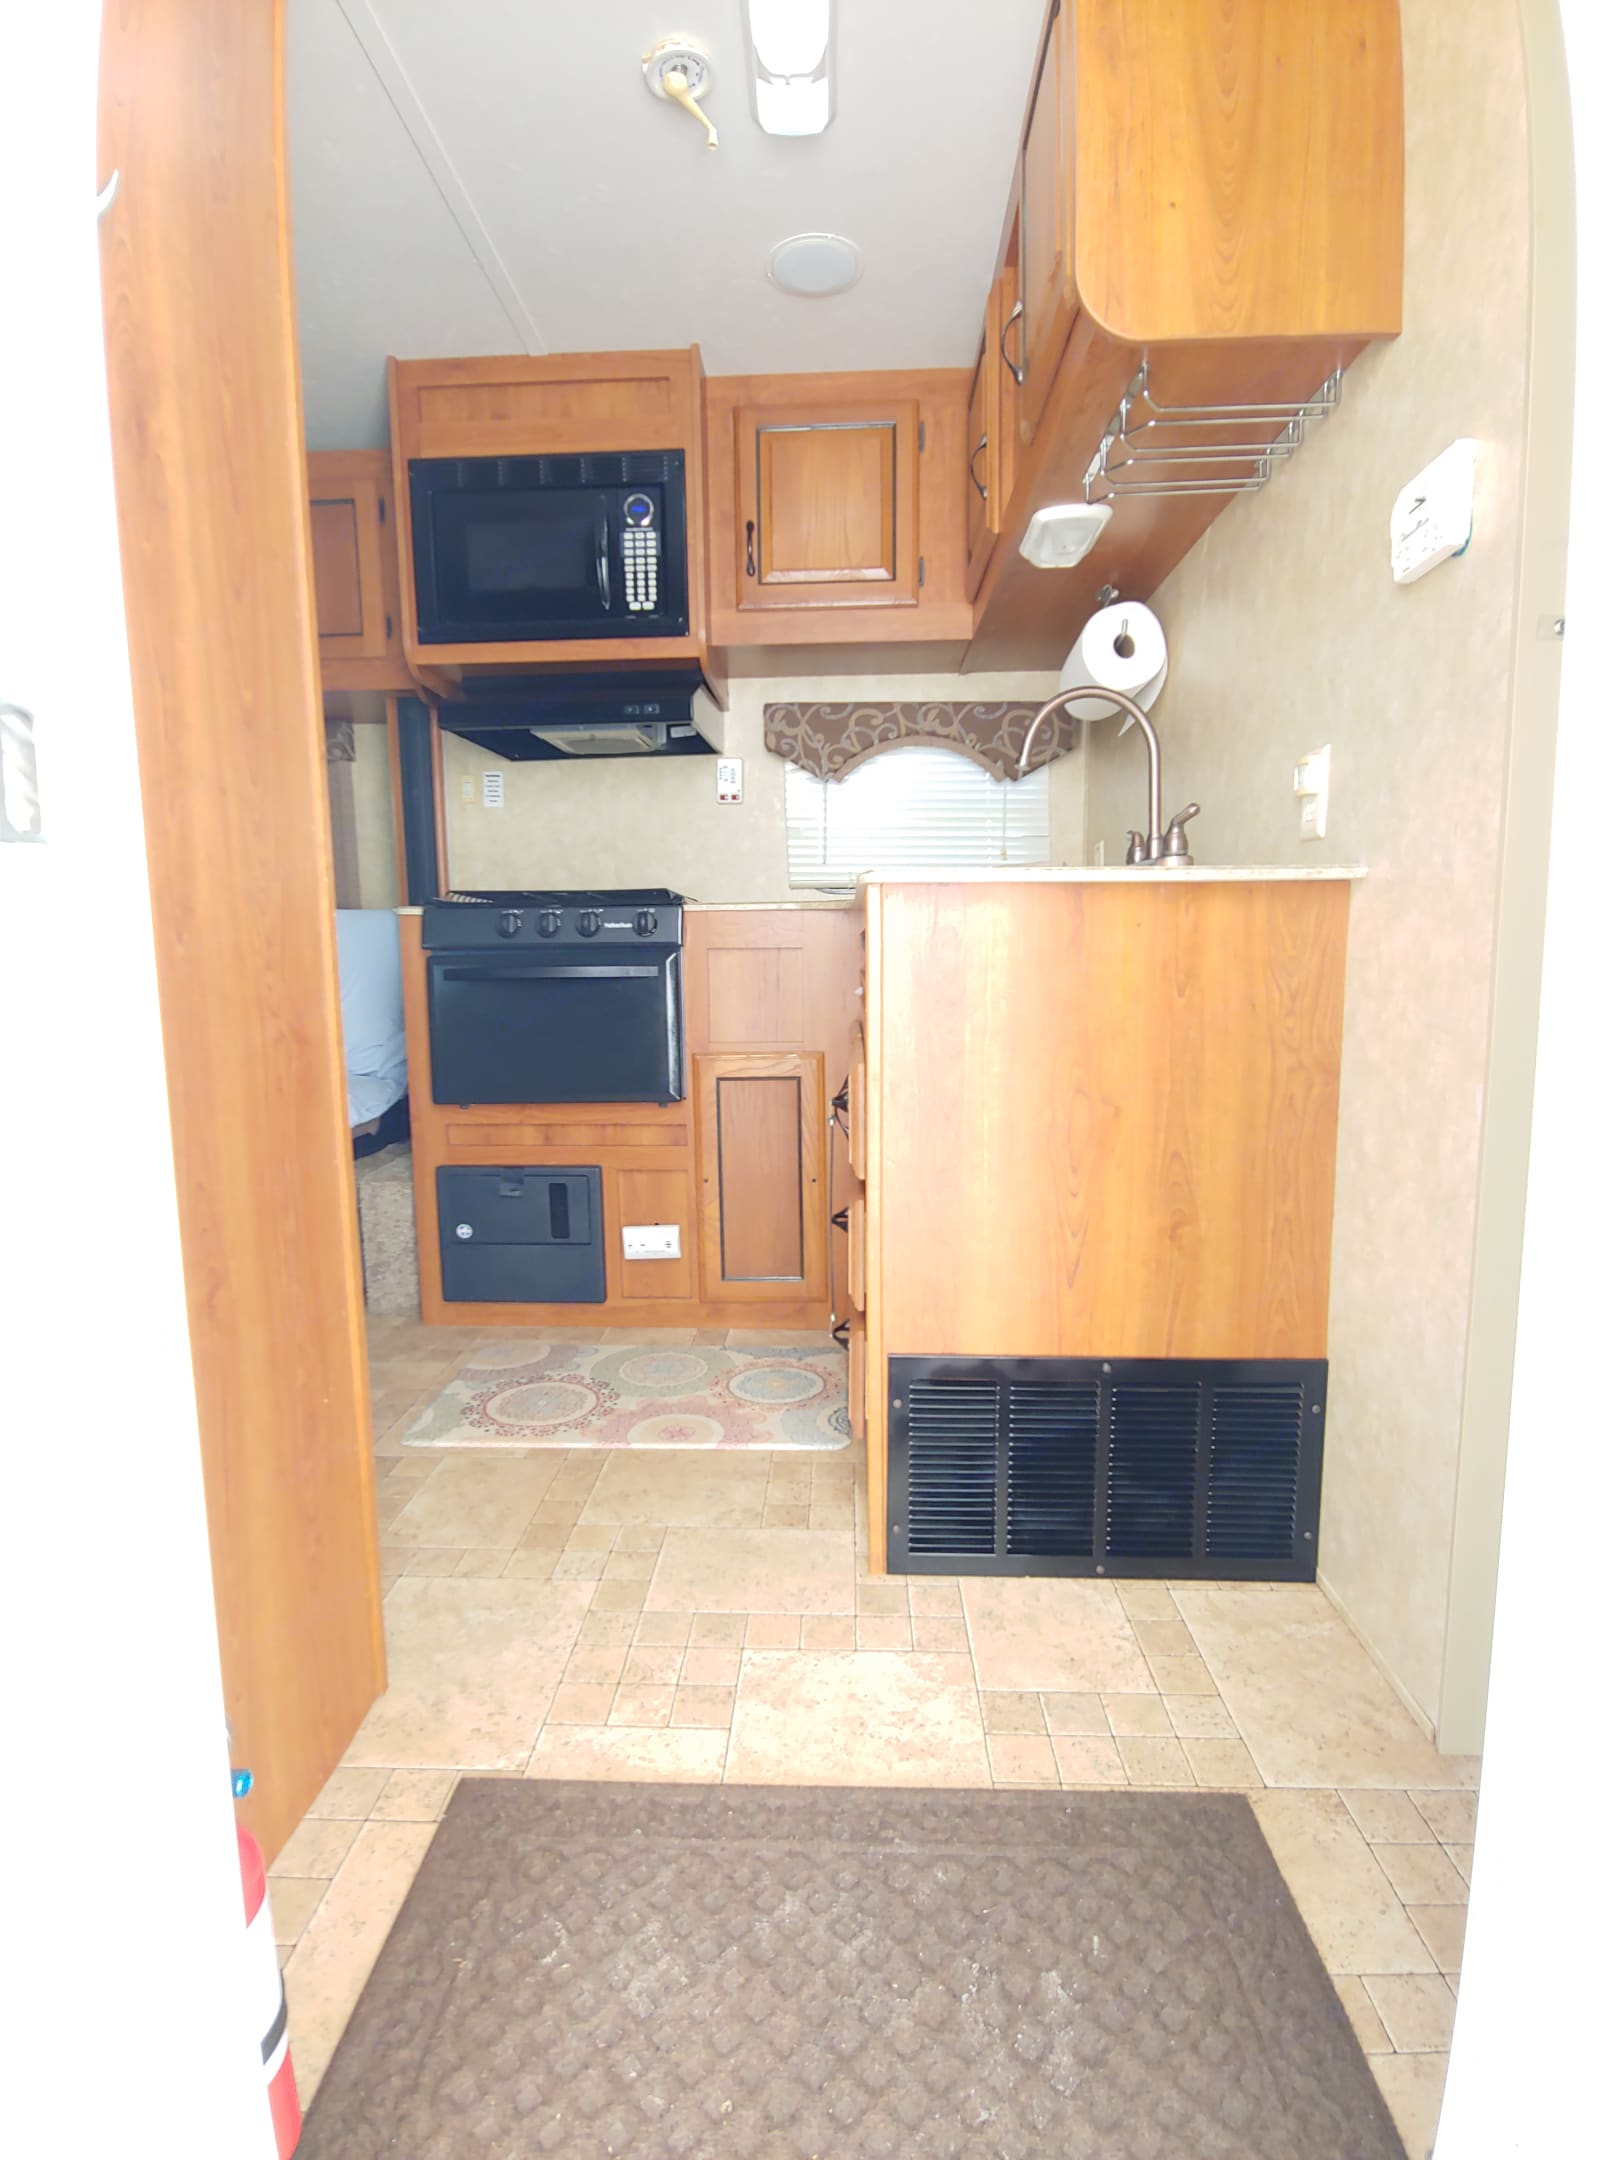 Kitchen from entrance. 3 burner stove, oven, microwave, double sink, and fridge with top freezer.. Coachmen Catalina 2011